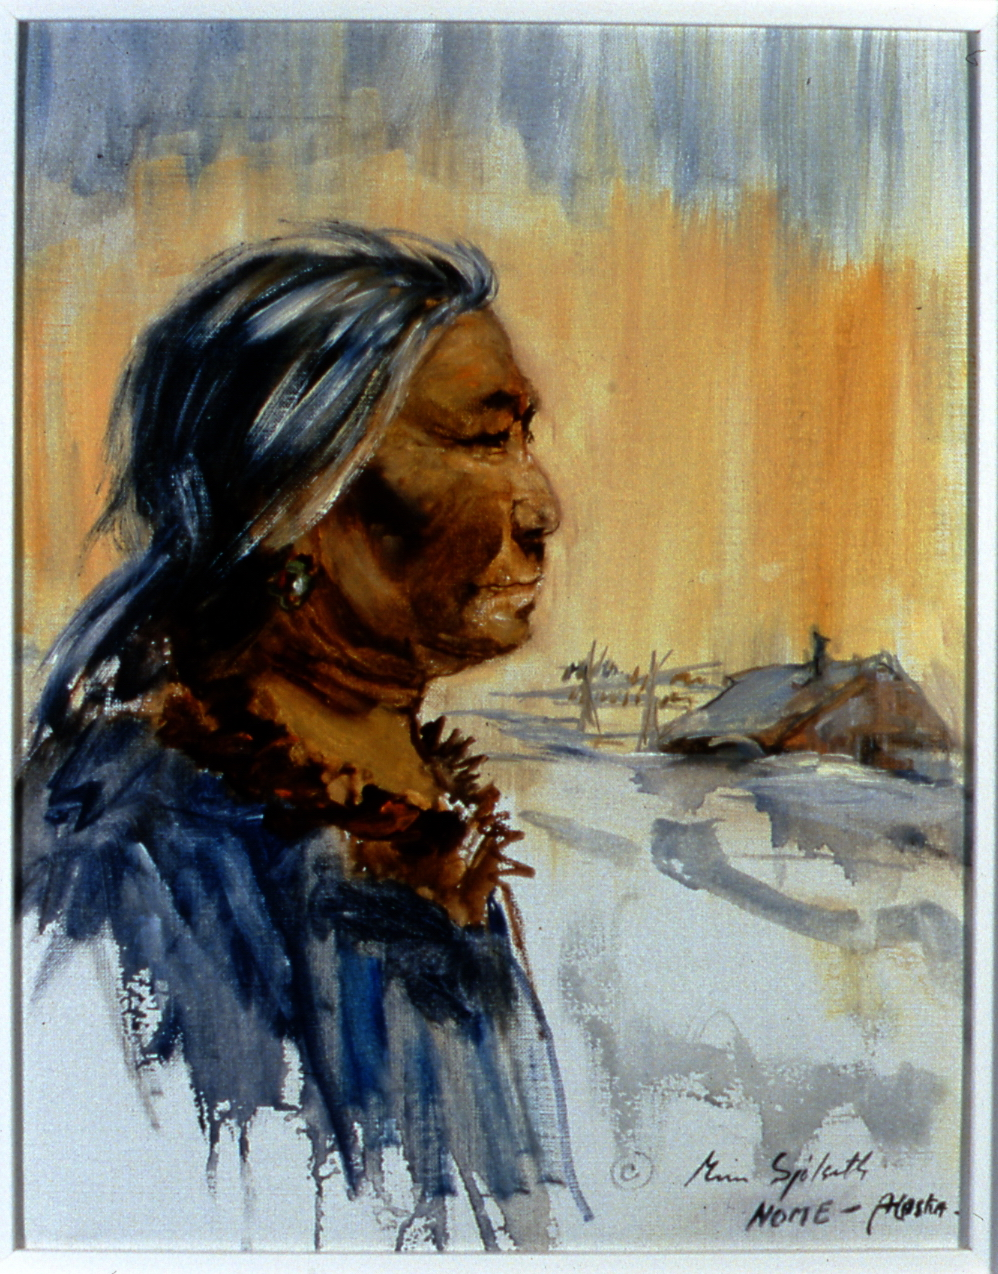 "Teresa,  1982,   Minn Sjølseth, oil on canvas, 13 1/2"" x 10 1/2"", 2000.04.01, gift of Al and Laila Campbell"